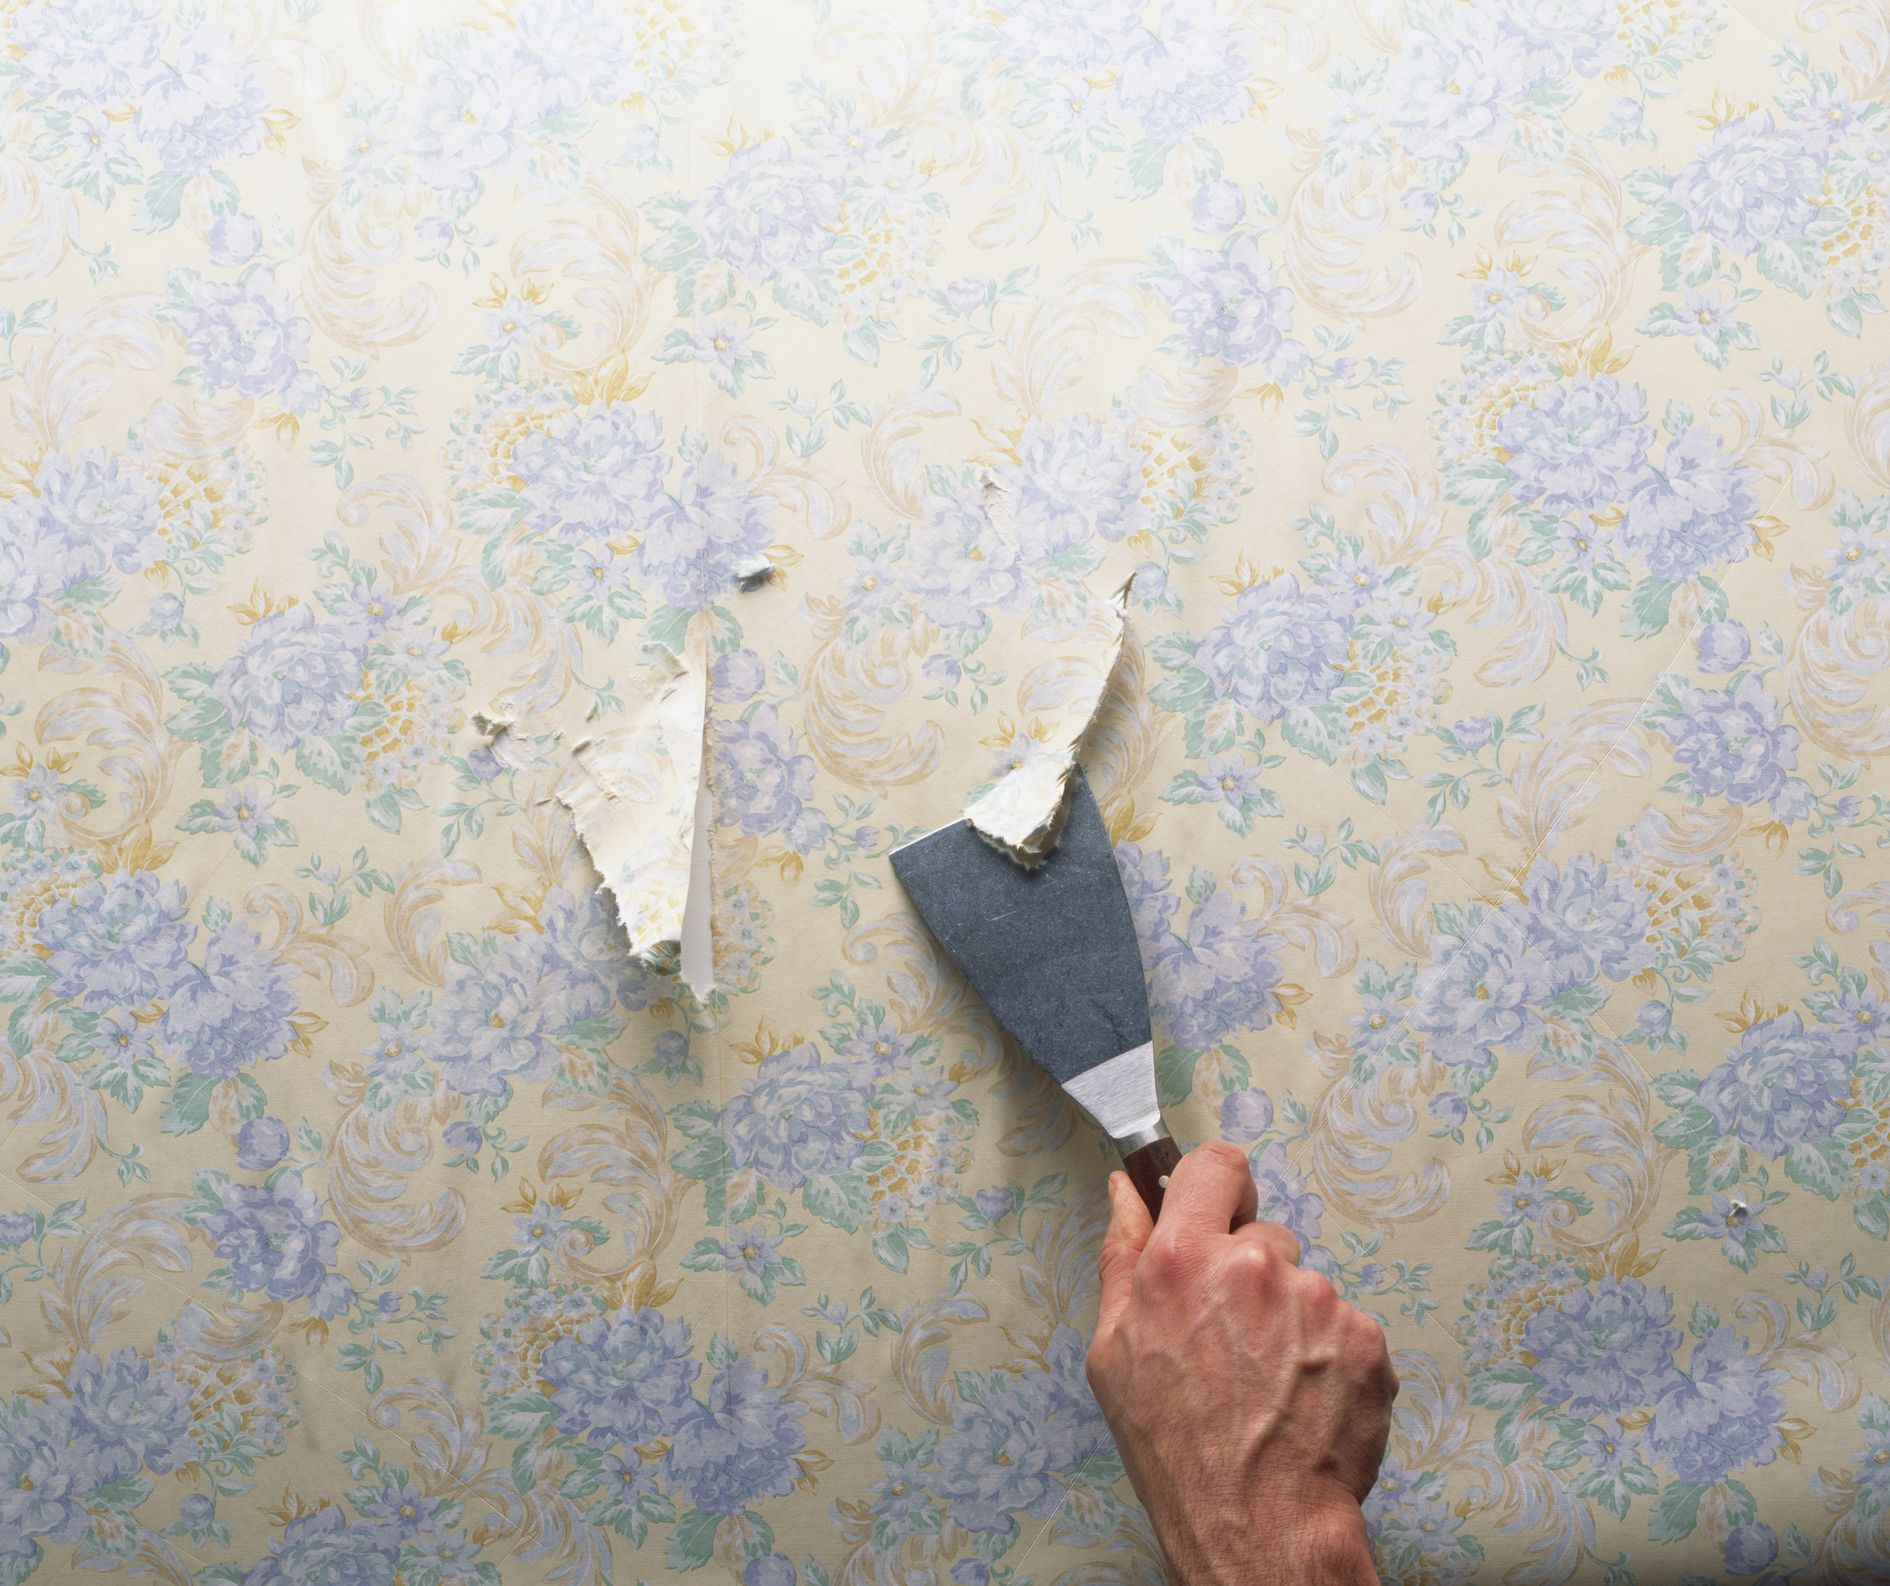 How To Remove Wallpaper 7 Easy Steps To Take Off Old Wallpaper